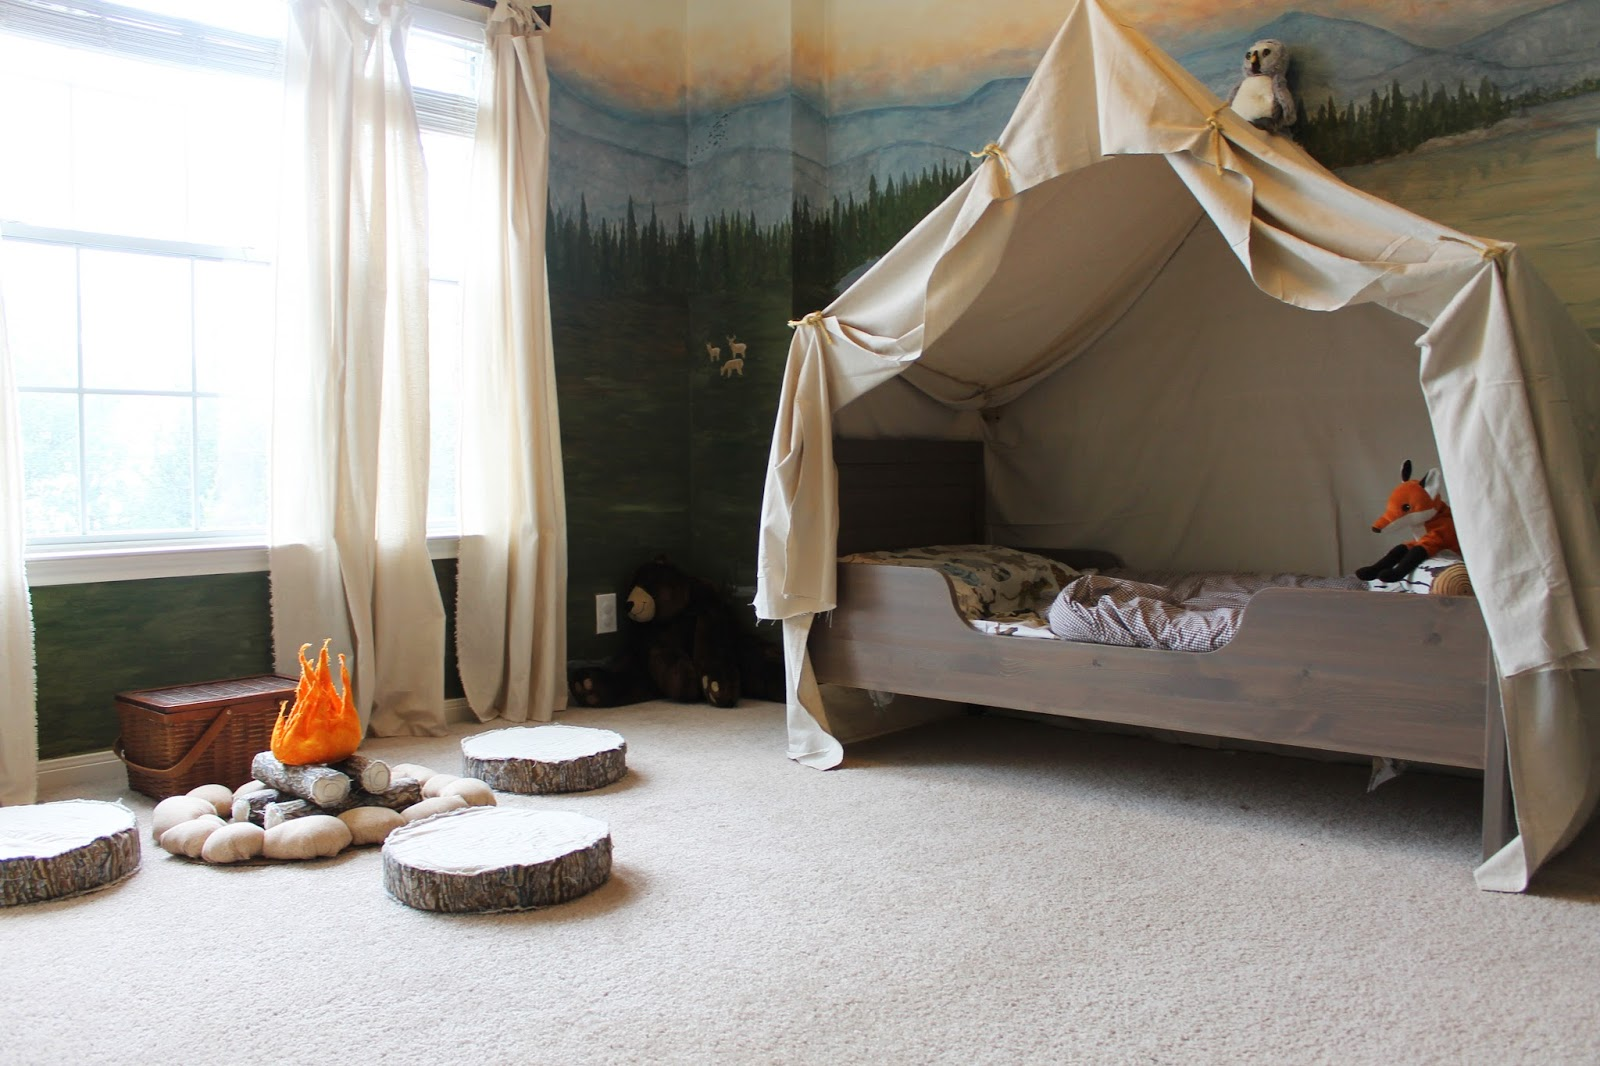 Woodland Themed Kids Room With Camping Tent Bed And Play Campfire The Ragged Wren On